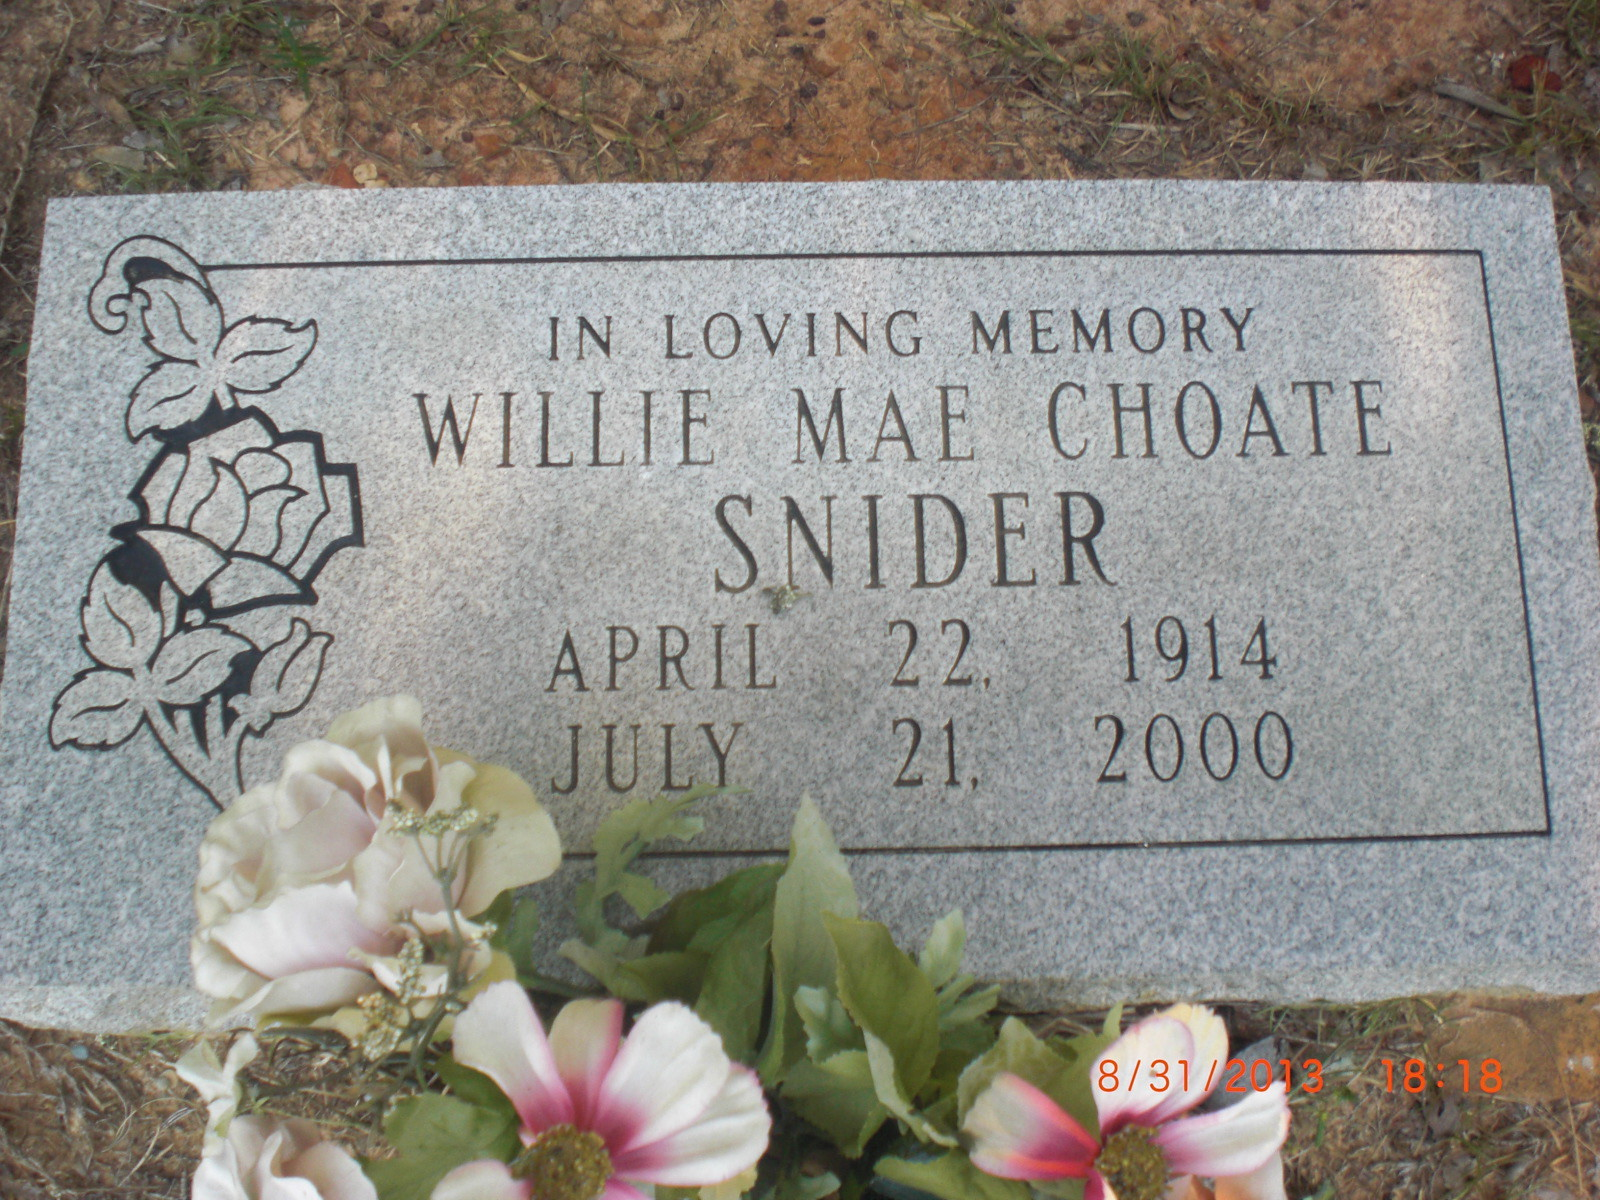 Willie Mae Choate